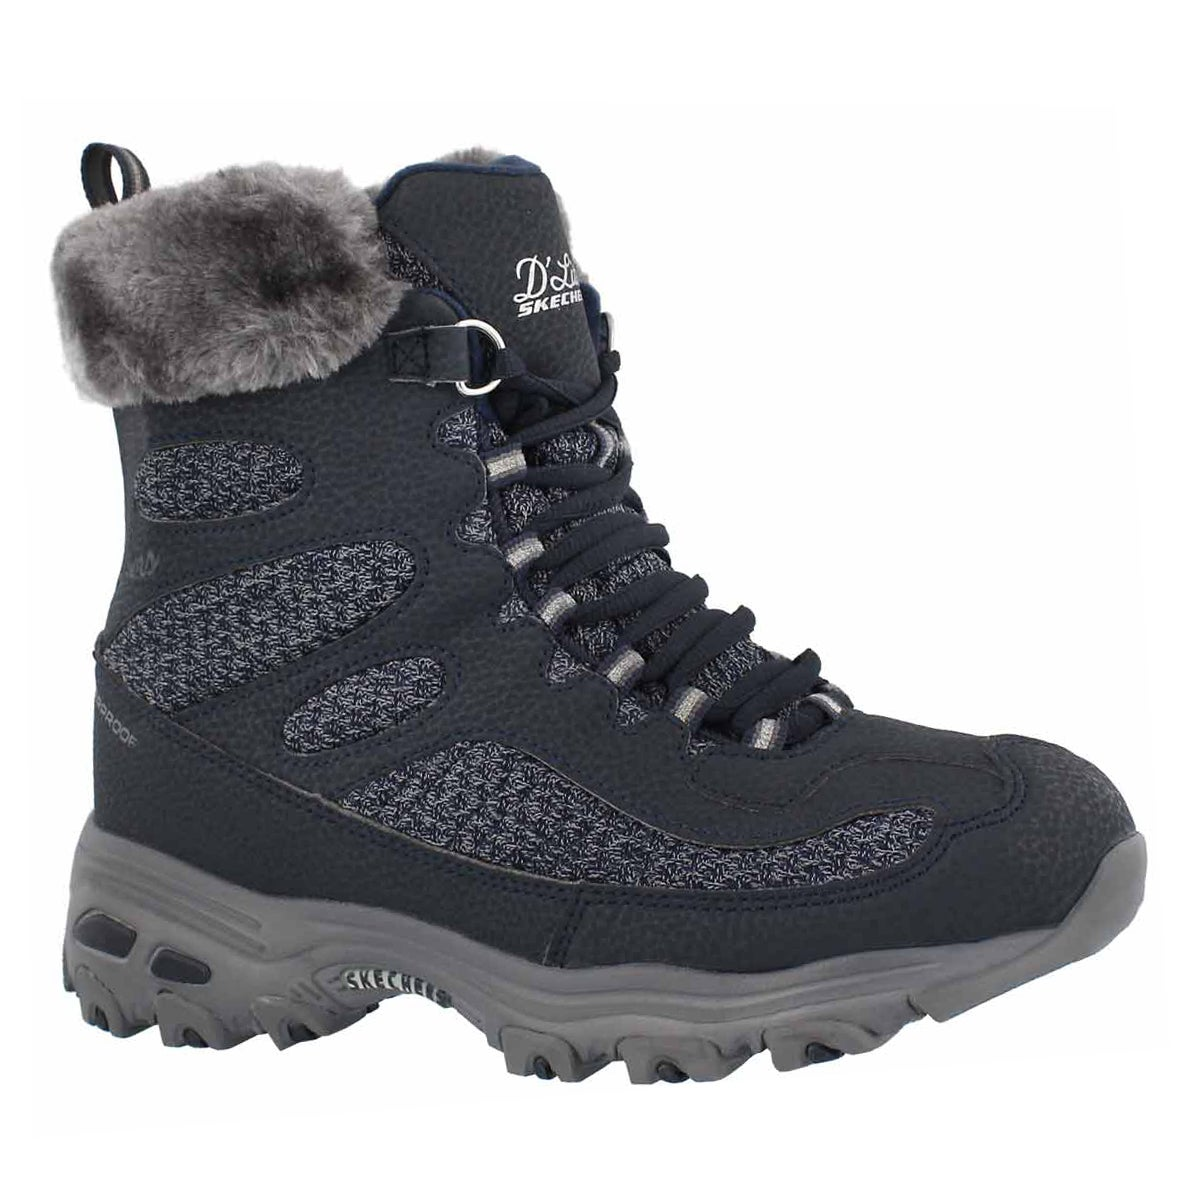 Women's D'LITES navy wtpf lace up winter boots